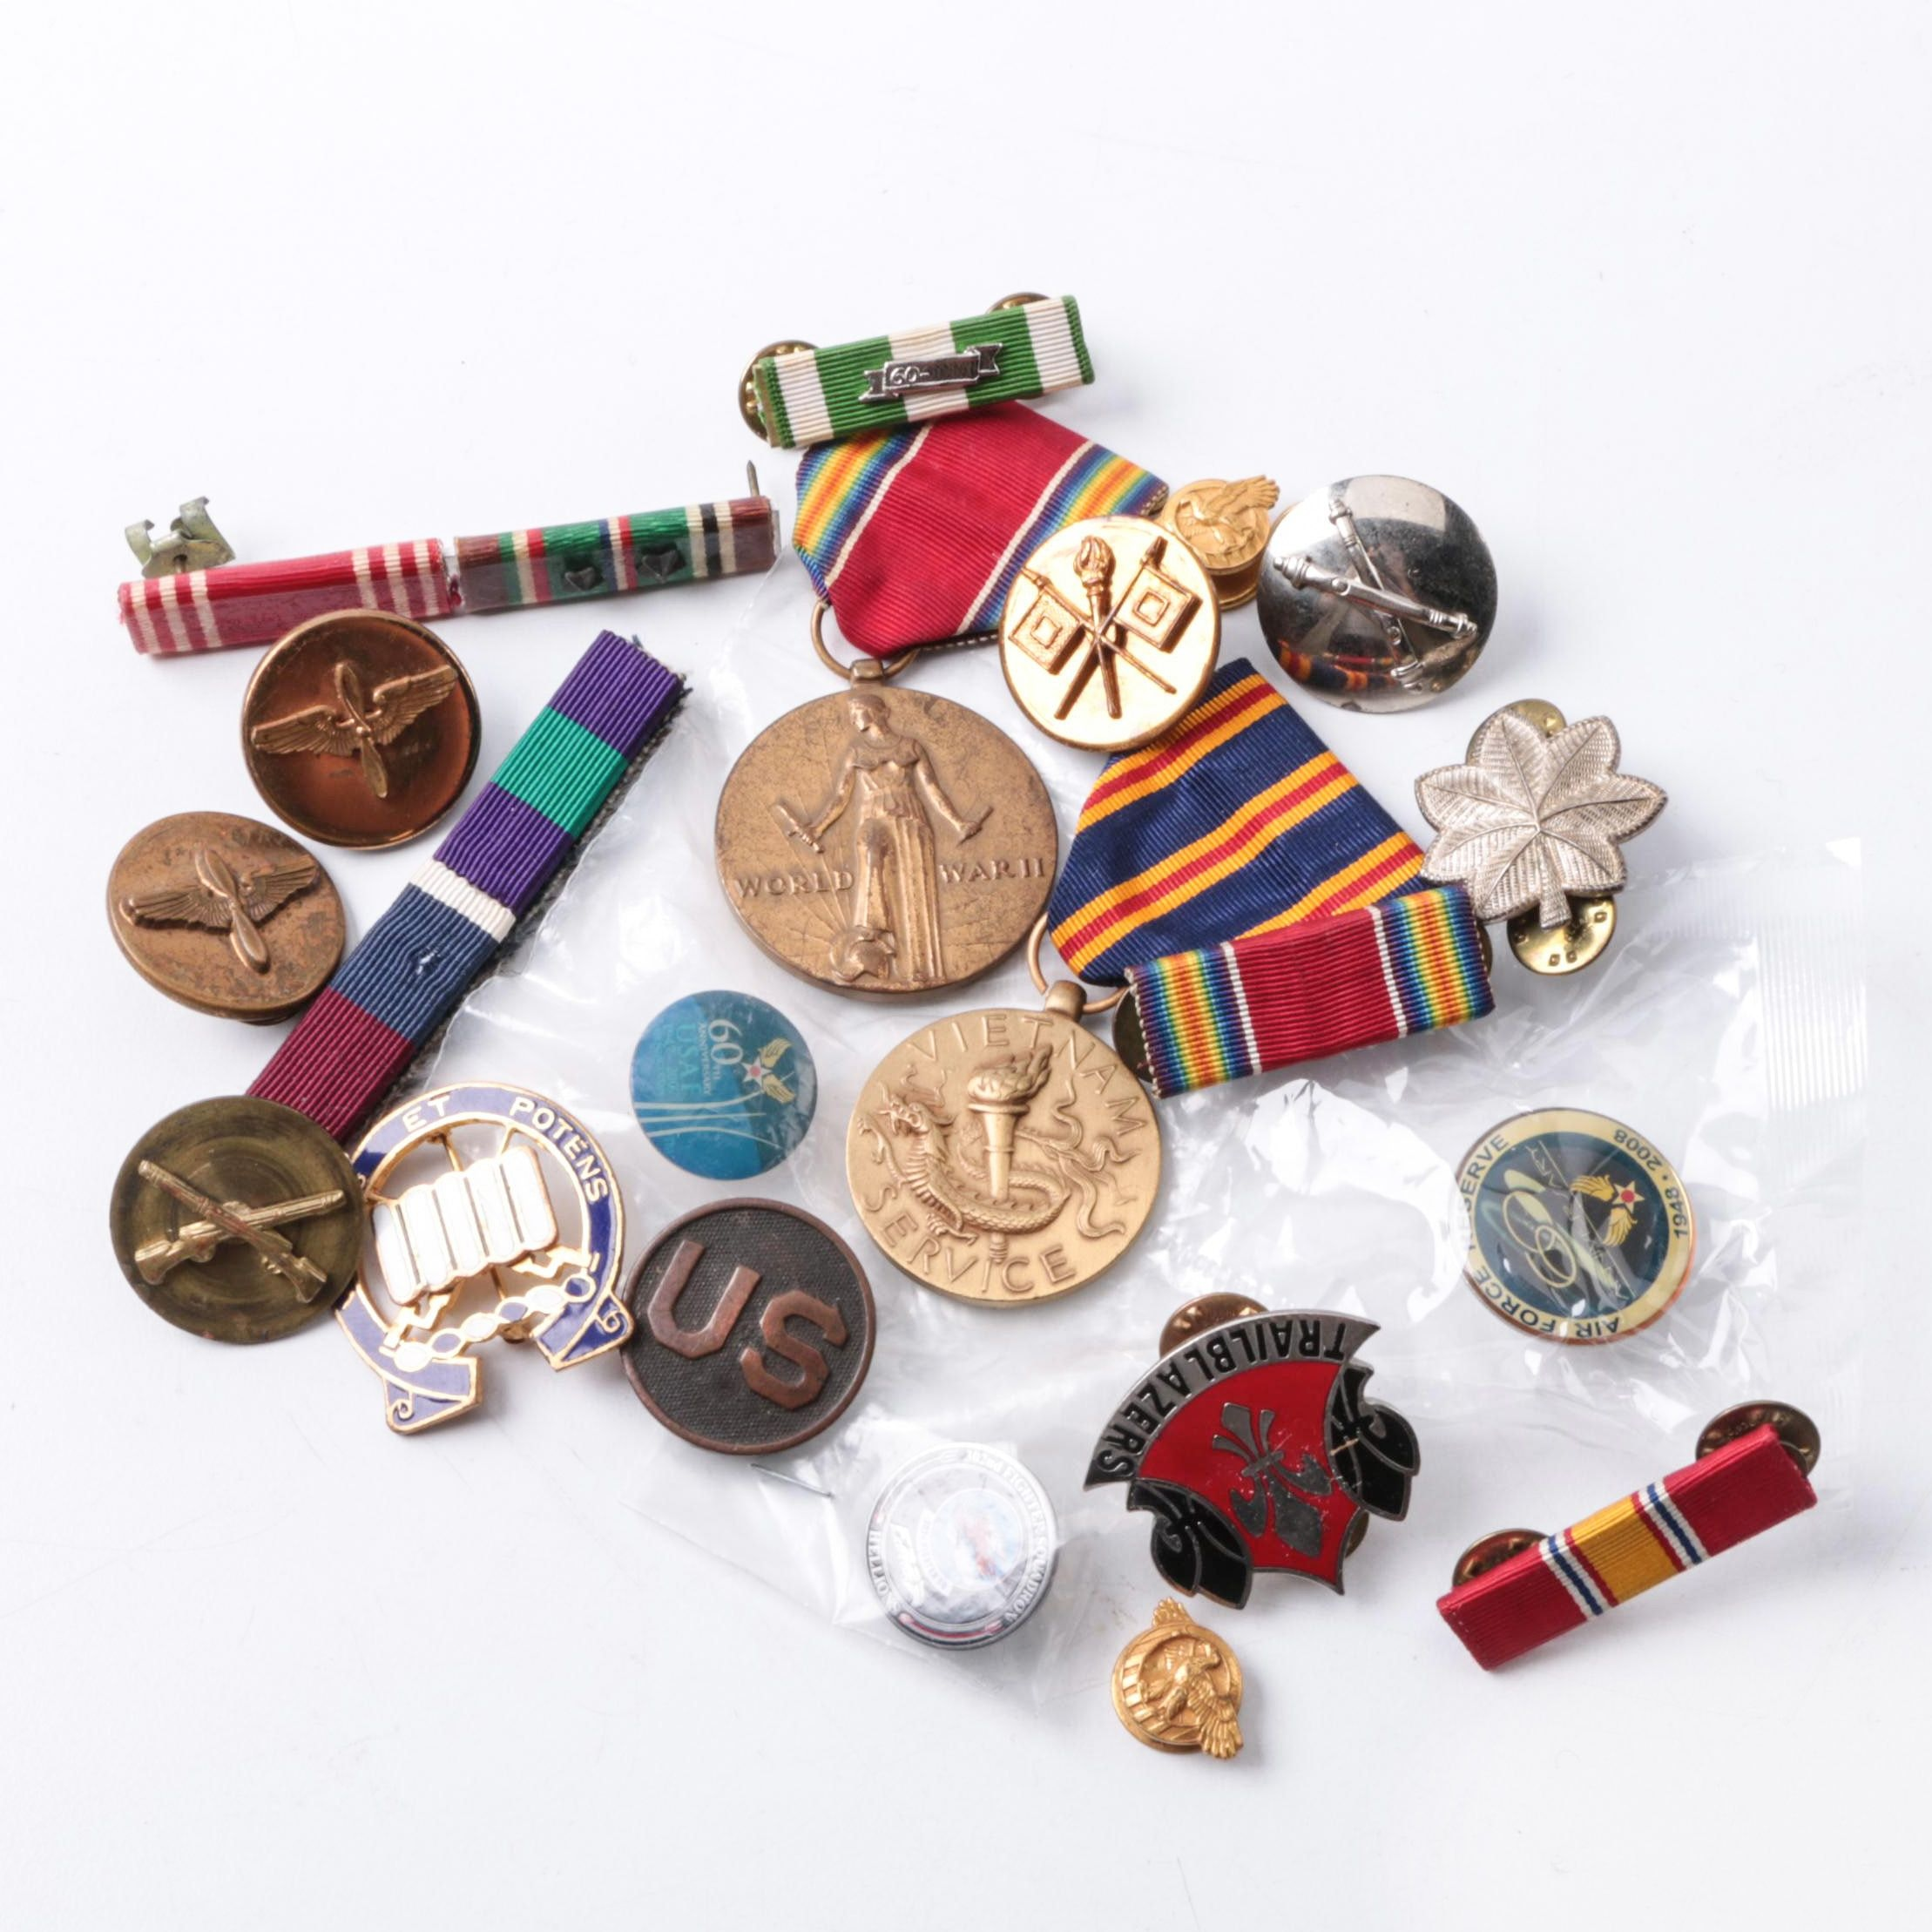 U.S. Military Medals and Badges